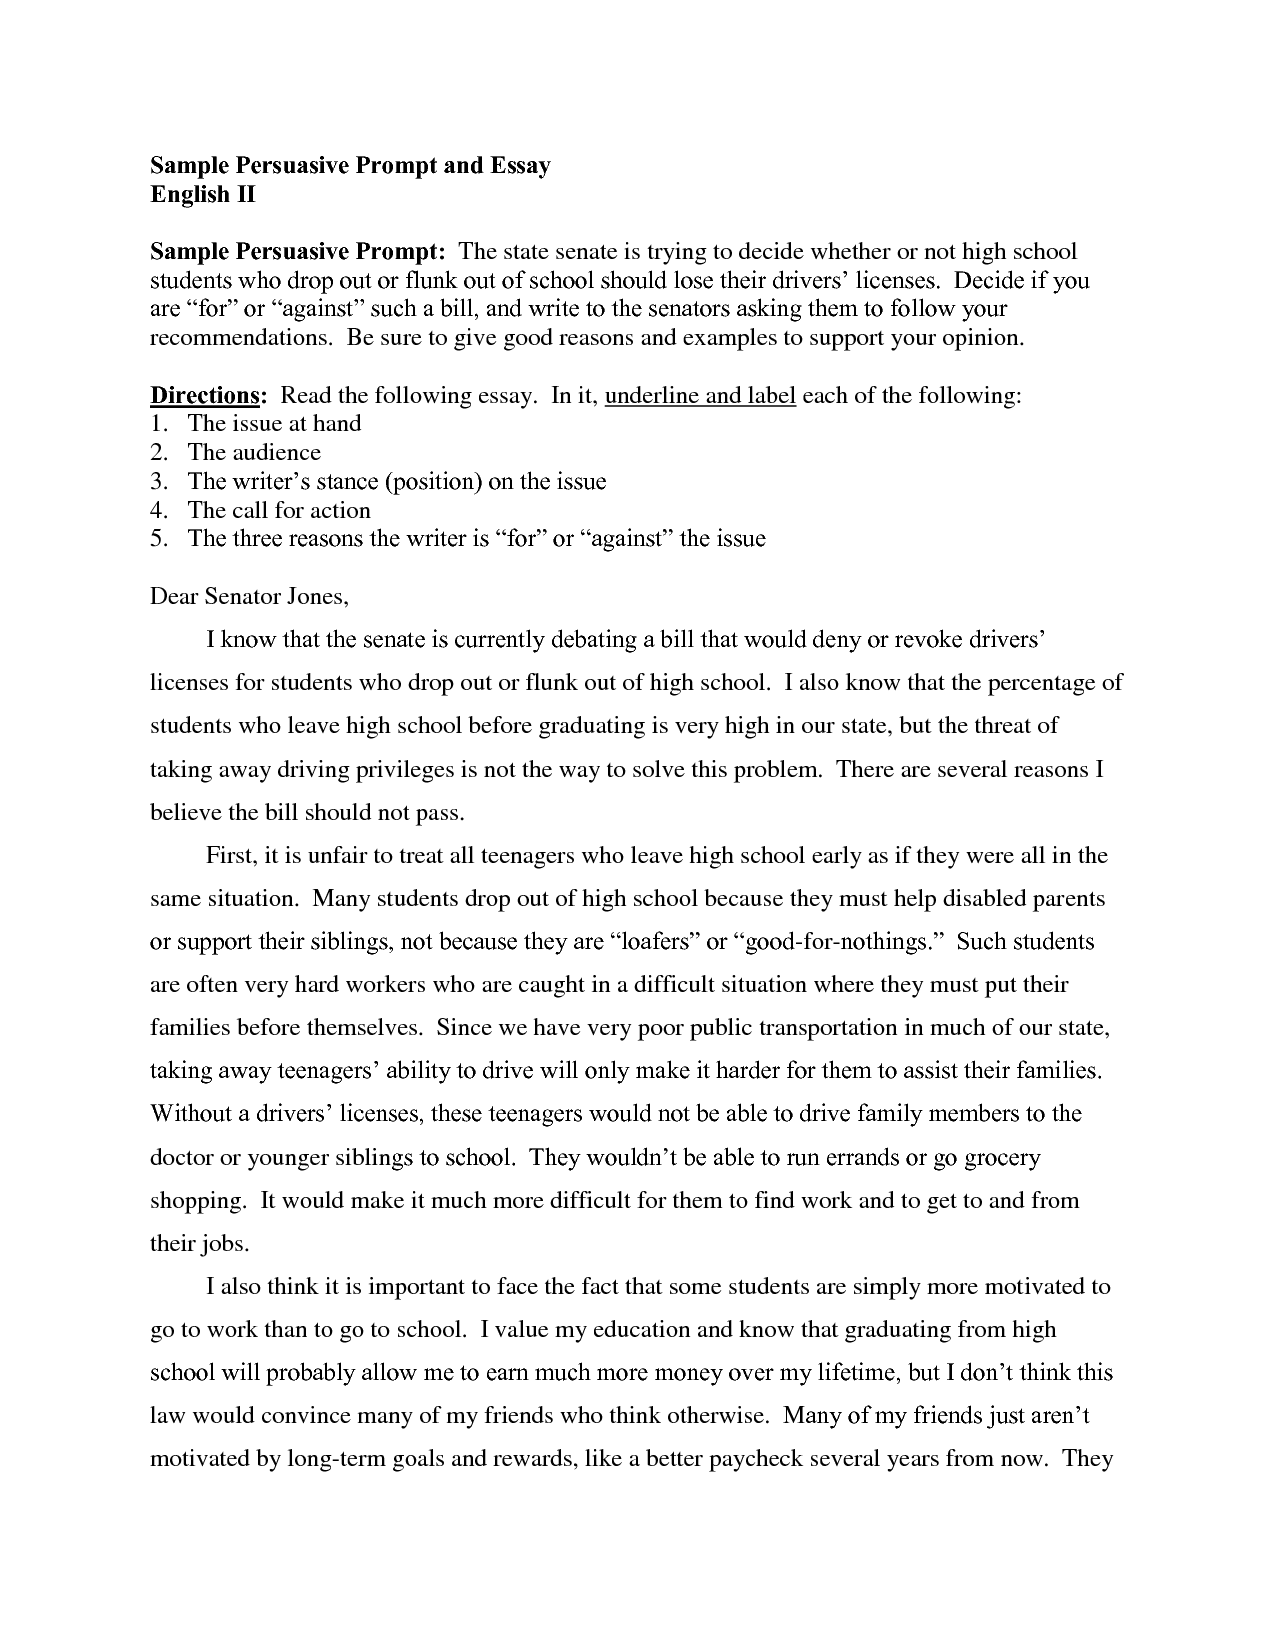 006 Persuasive Essay Topics For High School Sample Ideas Highschoolents Good Prompt Funny Easy Fun List Of Seniors Writing English Free Research Paper Best Students Full